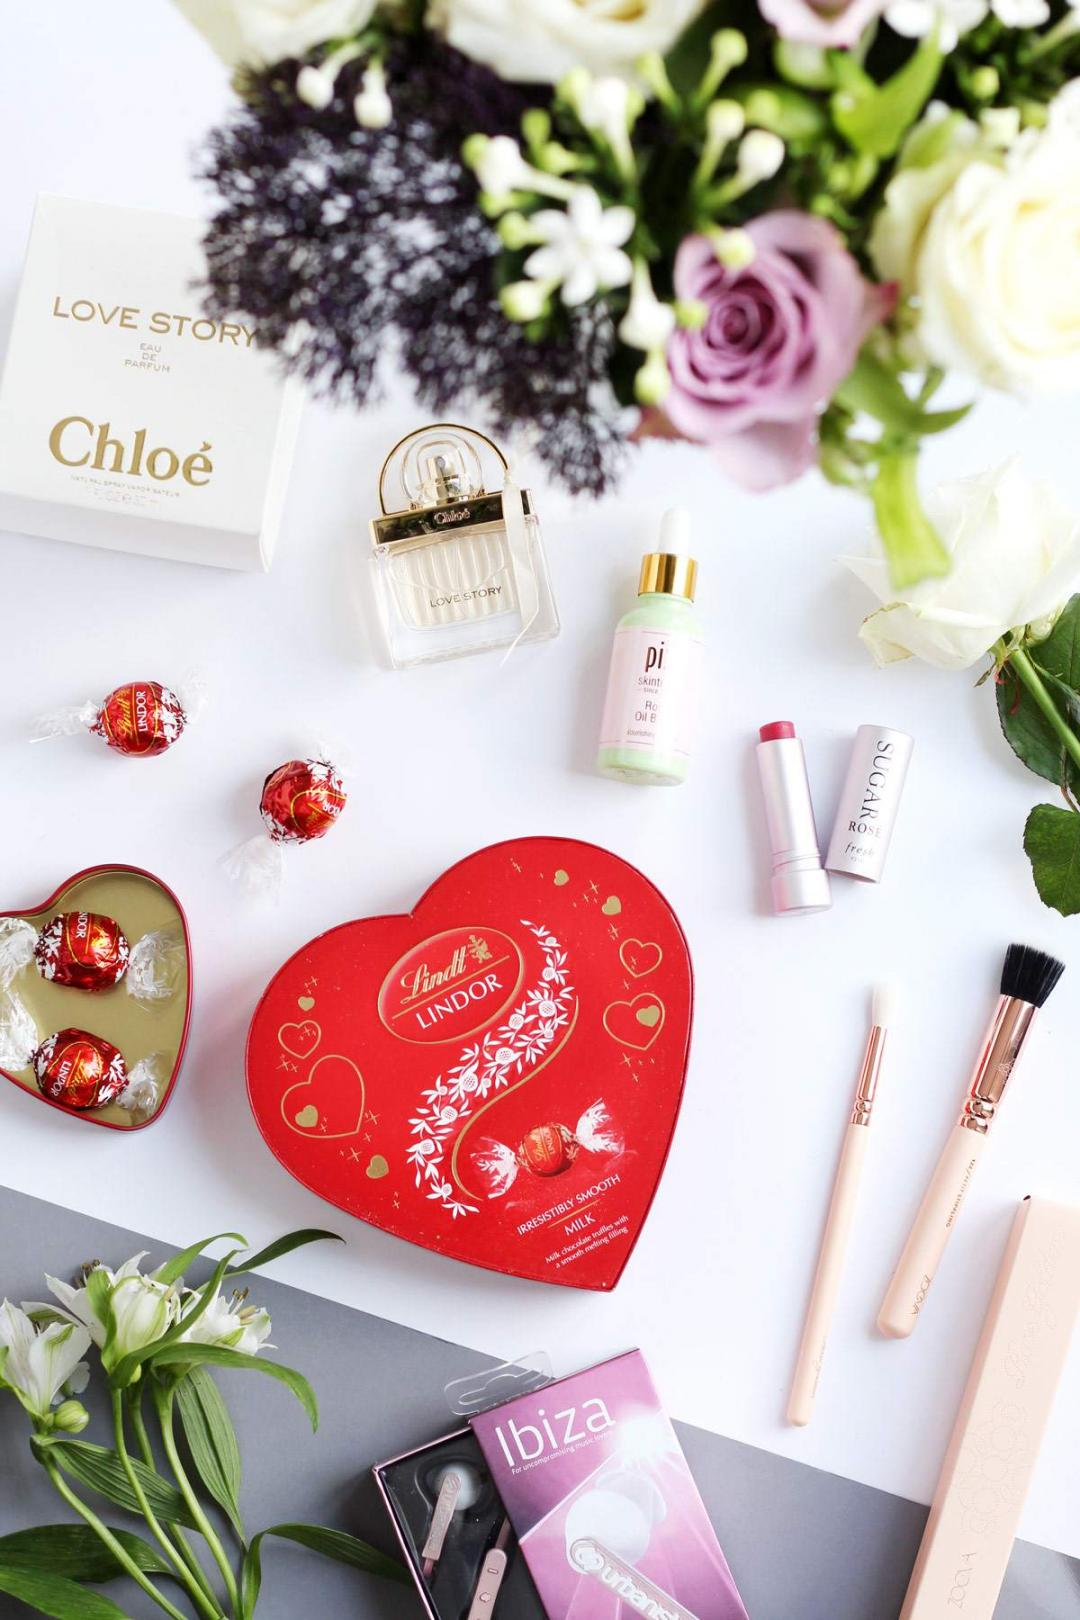 mothers-day-gift-guide-appleyard-london-flowers-lindt-chloe-love-story-pixi-rose-oil